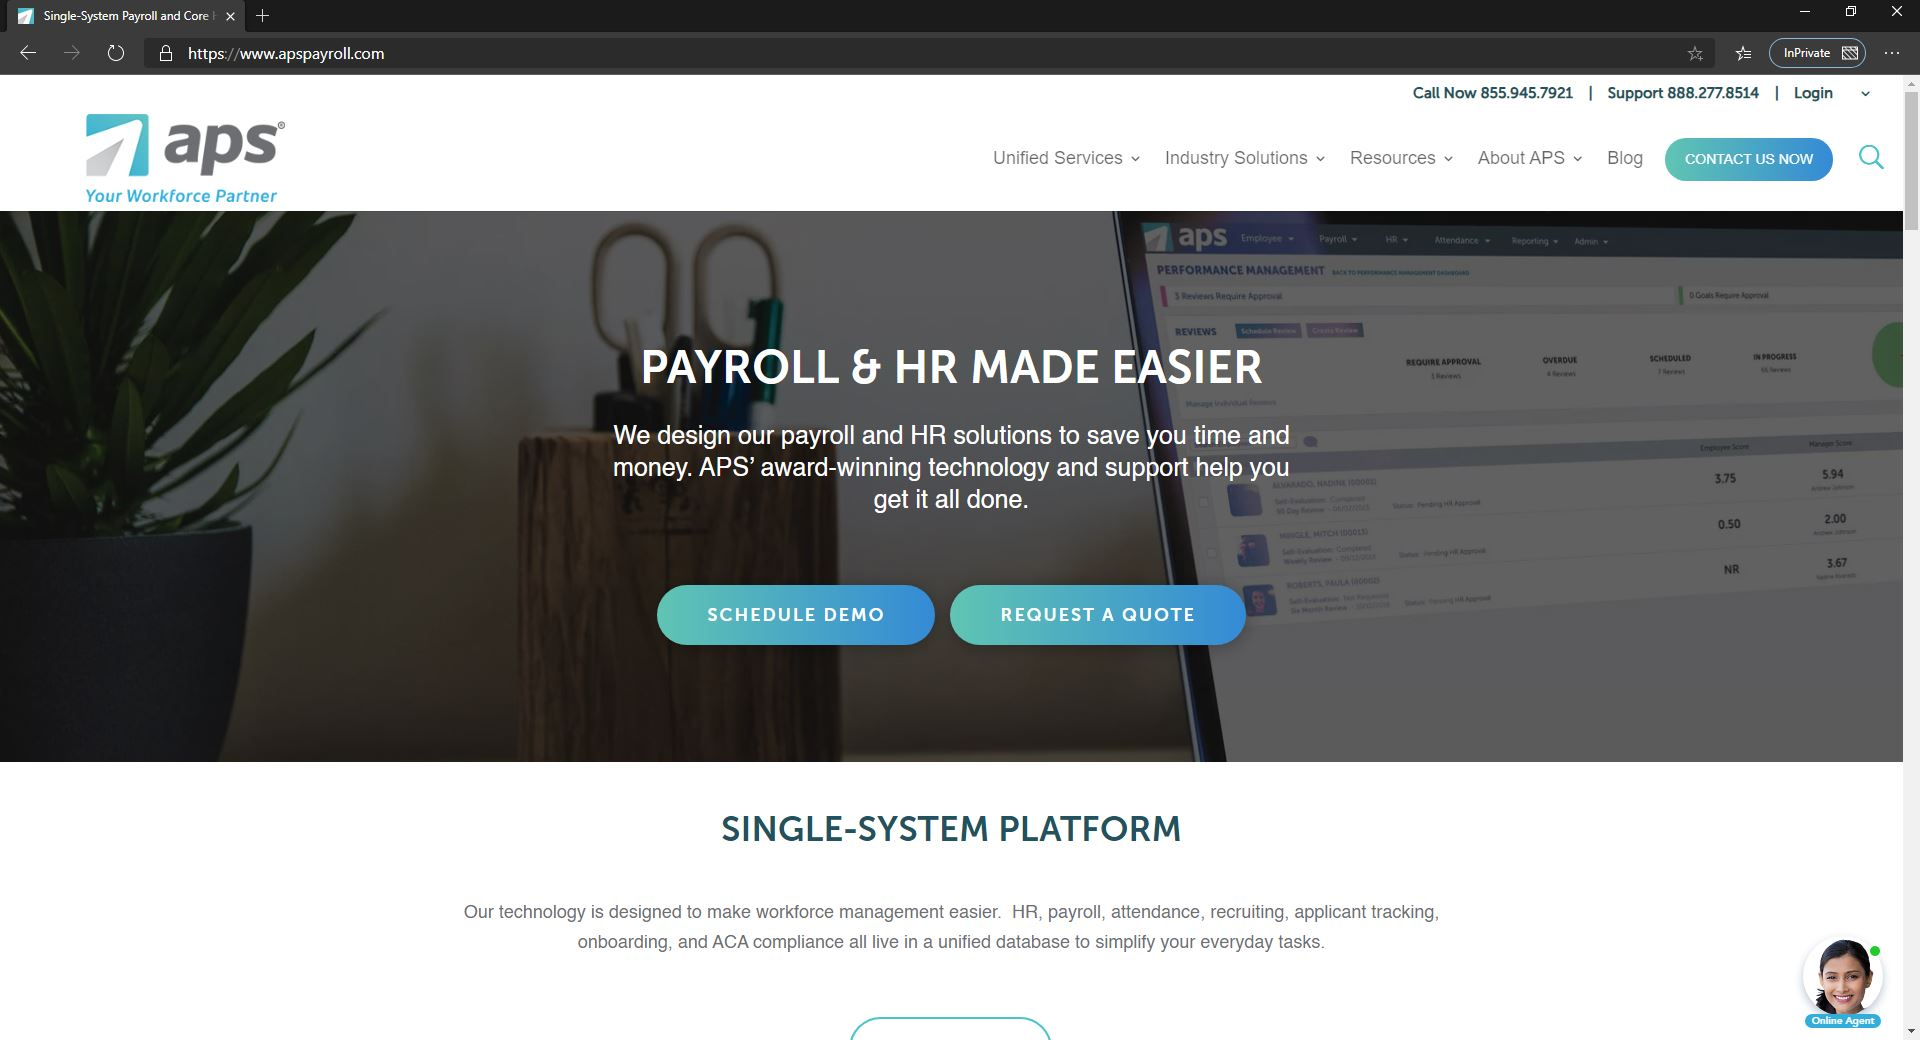 10 Best Recruiting Software For Small Businesses & Startups Companies-Apps-Fig 1